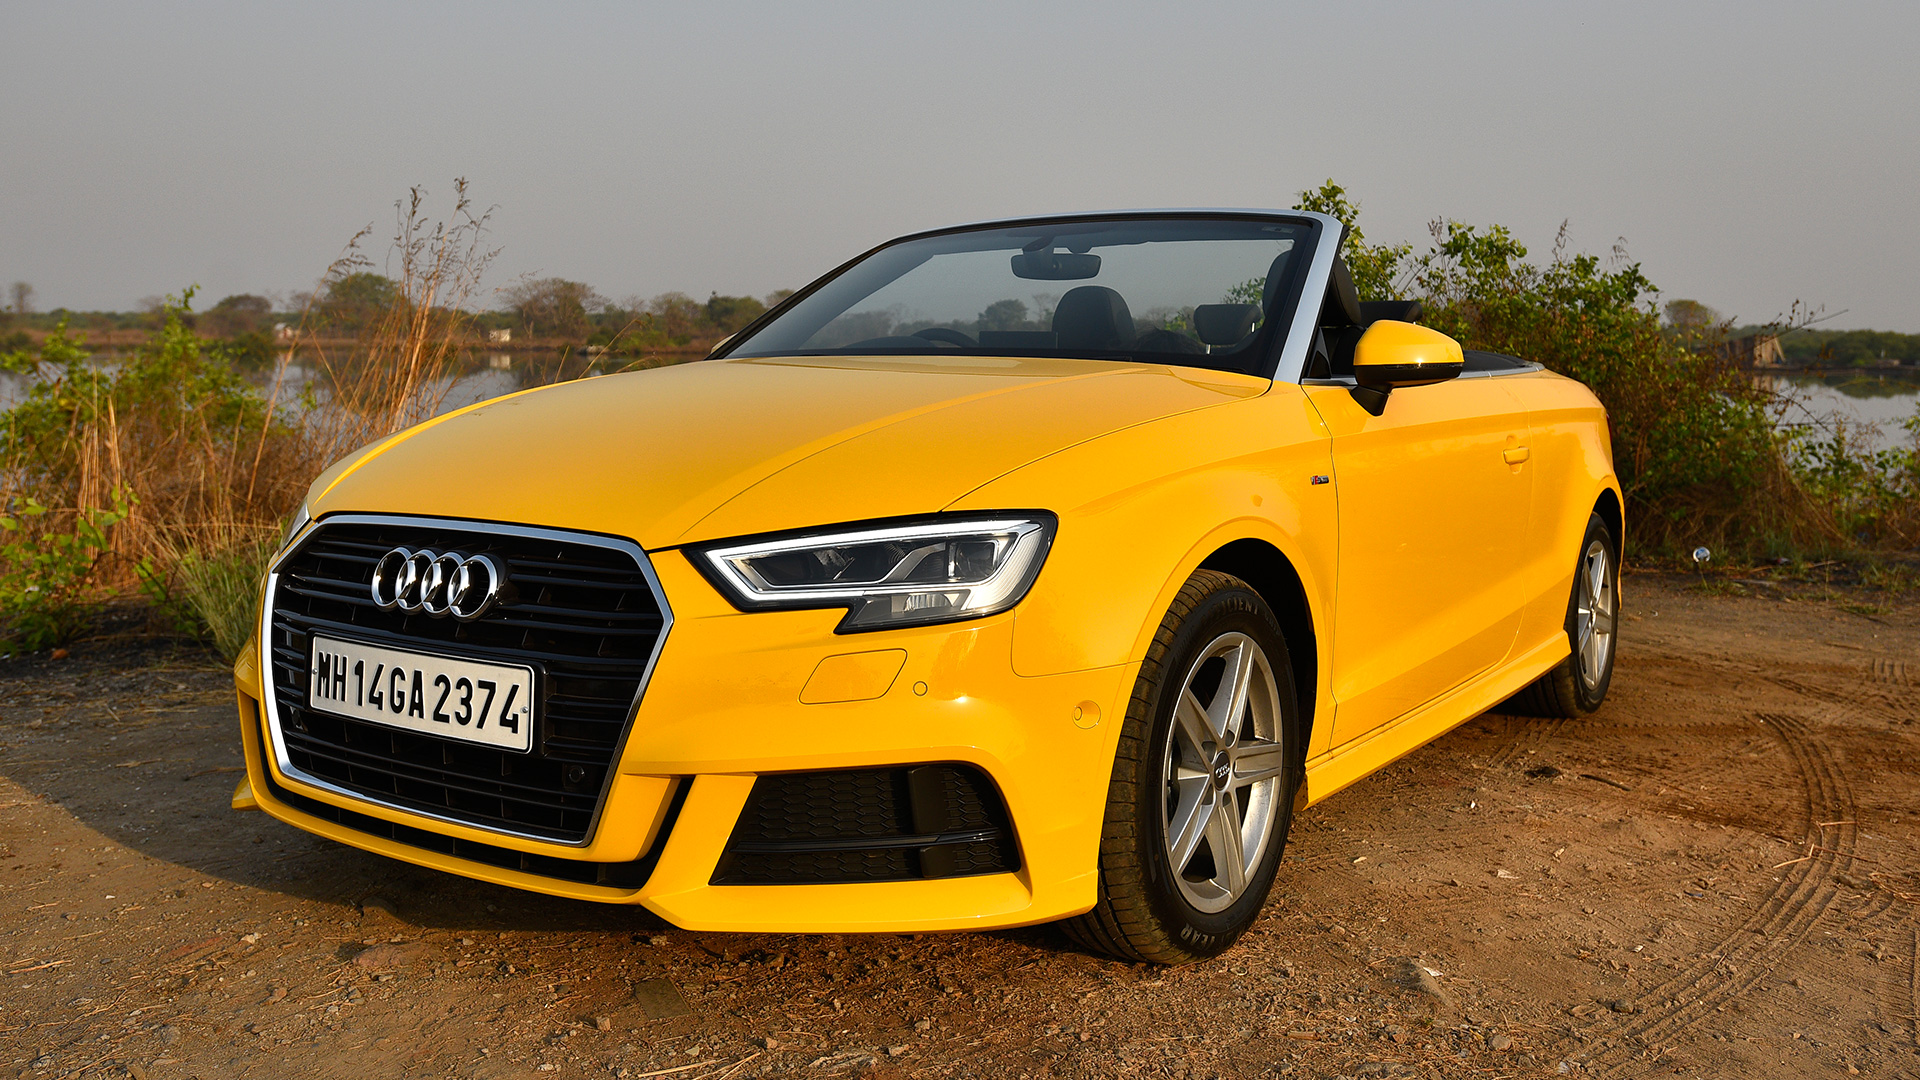 Audi A3 Cabriolet 2017 Price Mileage Reviews Specification Gallery Overdrive